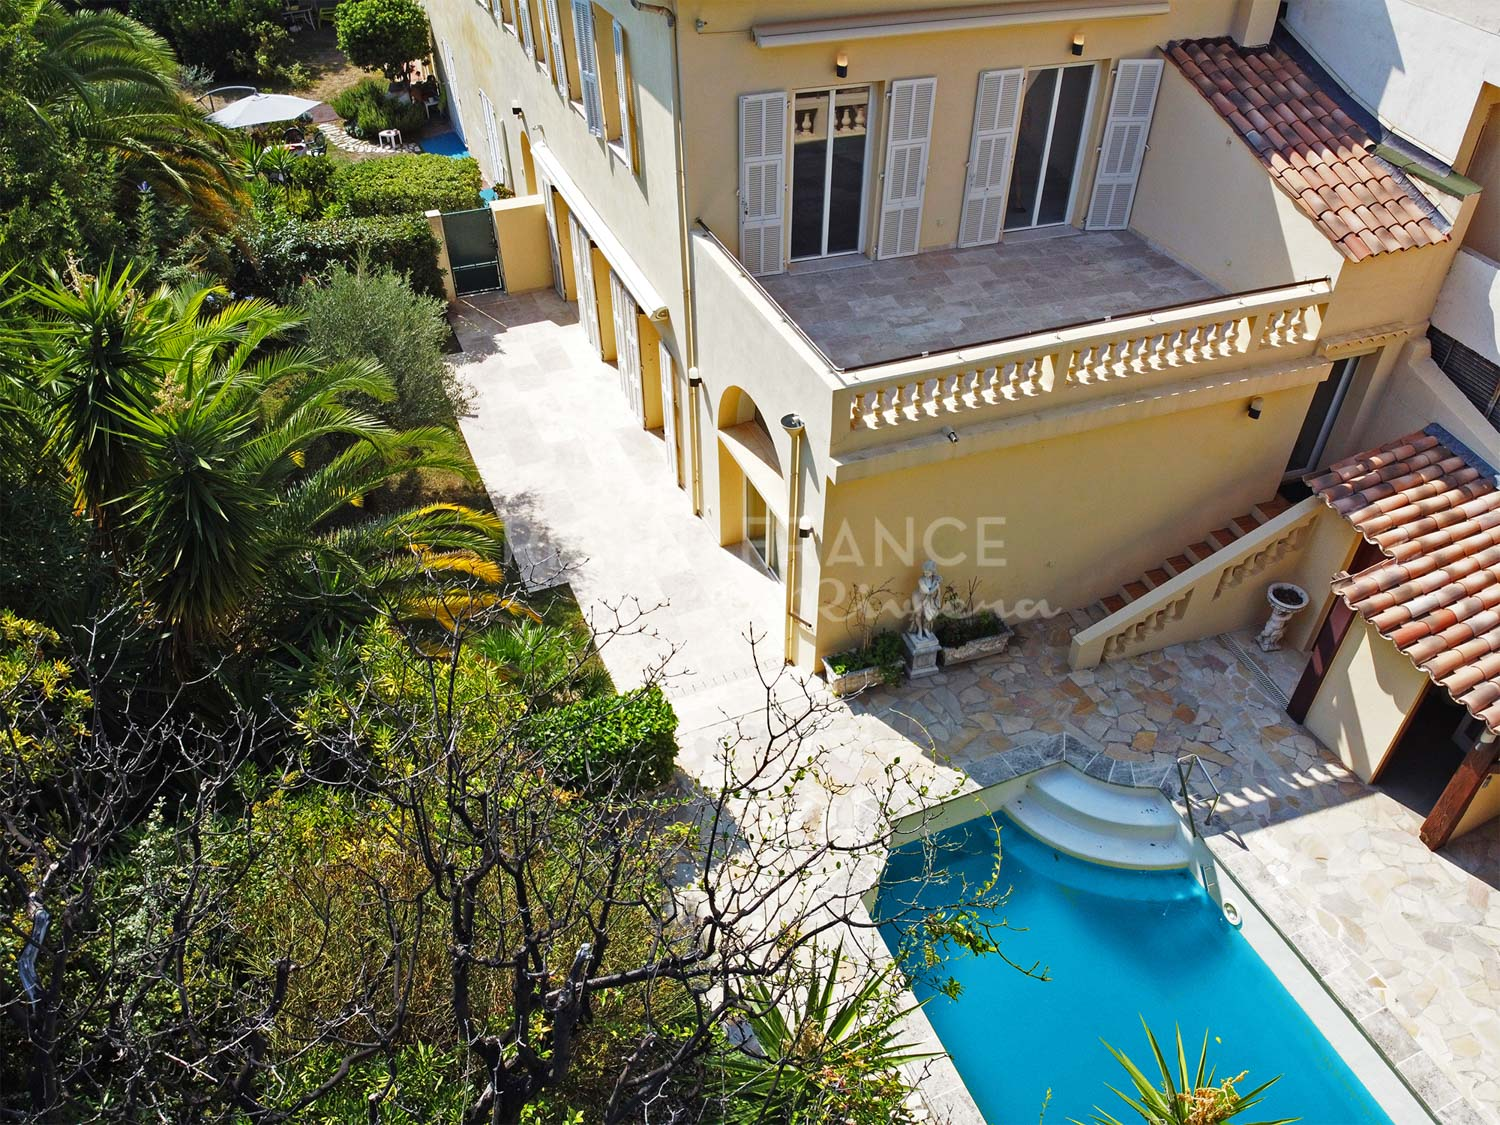 For sale townhouse in Beaulieu-sur-Mer - pool